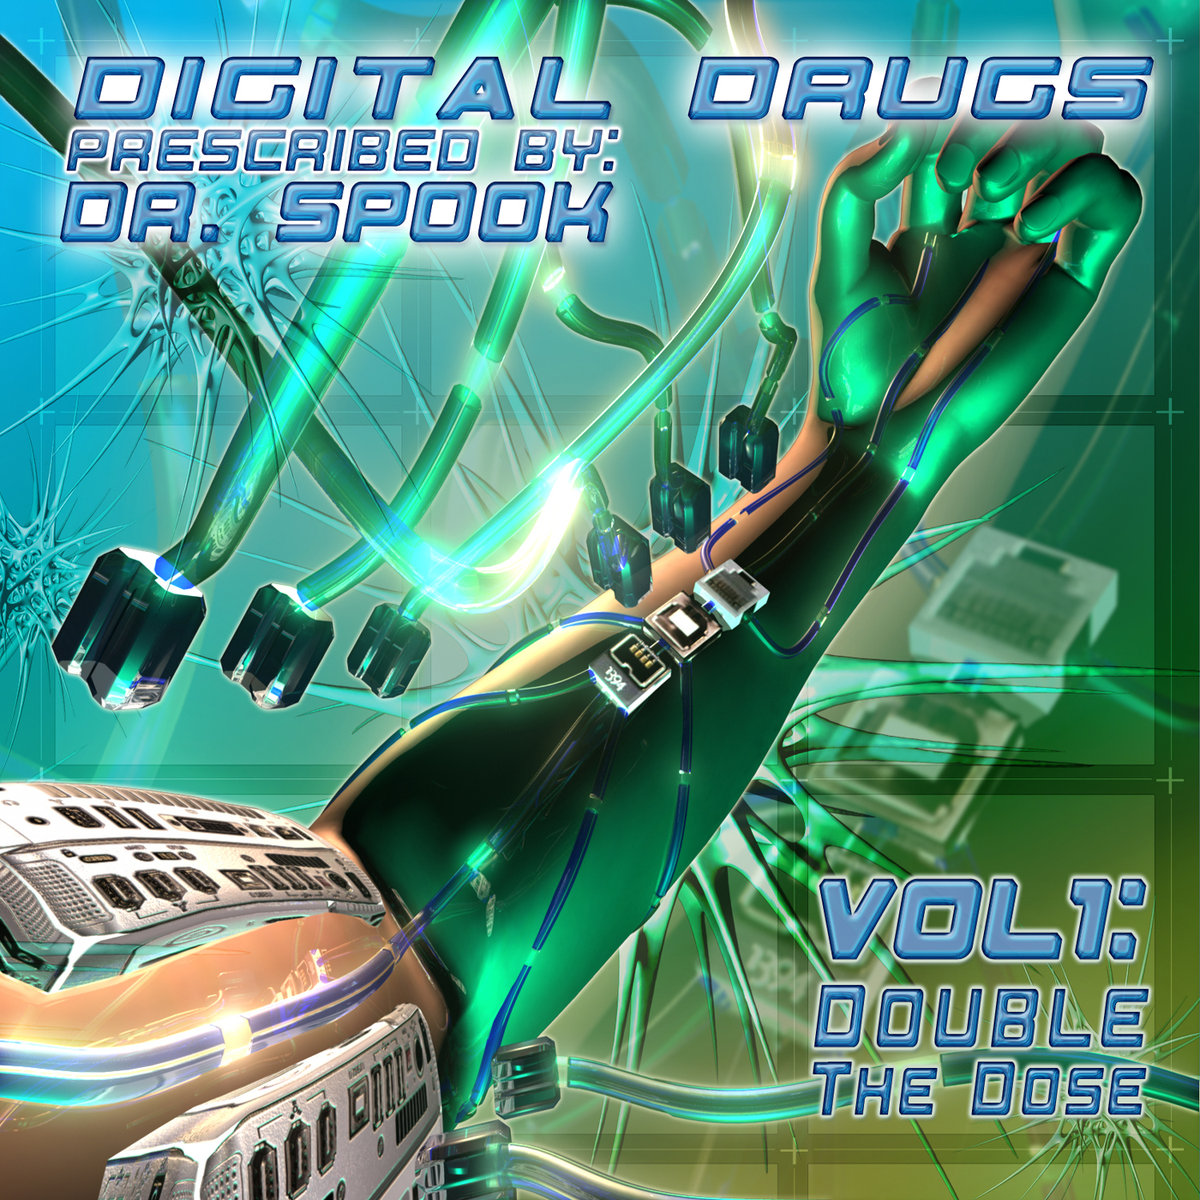 Darkforce - Two Towers @ 'Various Artists - Digital Drugs Vol.1: Double the Dose (Prescribed by Dr. Spook)' album (electronic, goa)